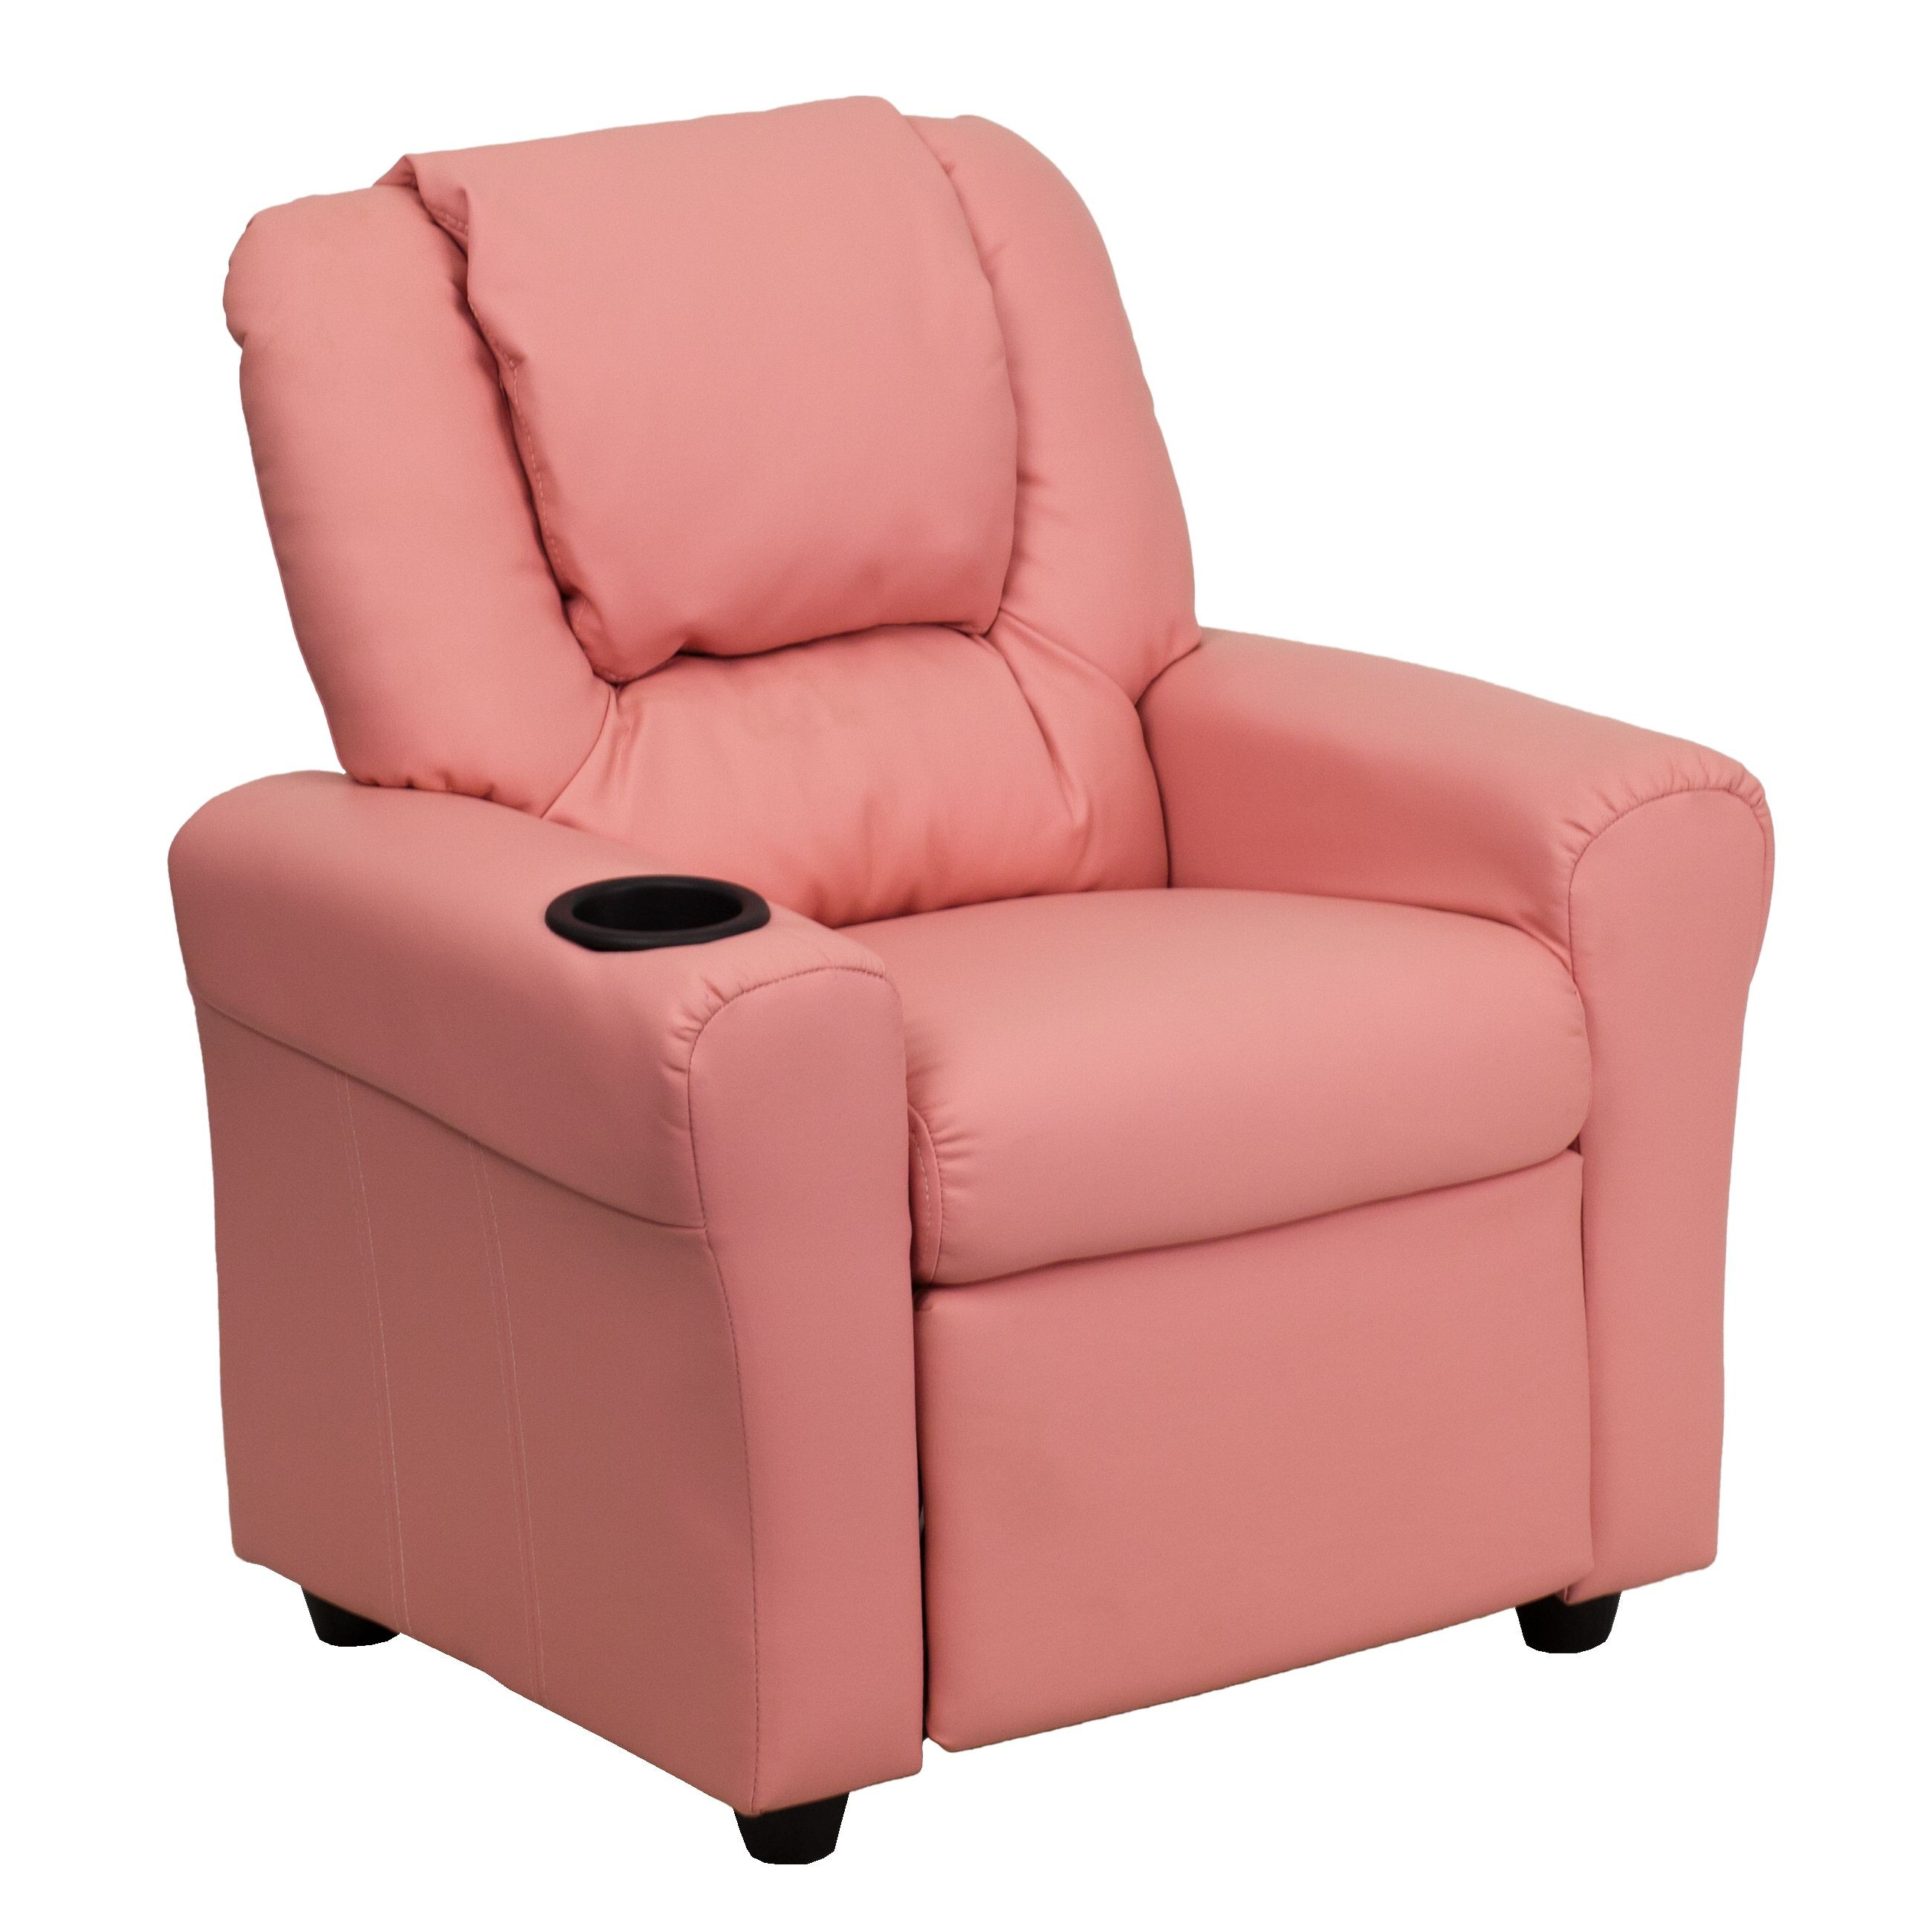 Flash Furniture DG-ULT-KID-PINK-GG Contemporary Pink Vinyl Kids Recliner with Cup Holder and Headrest